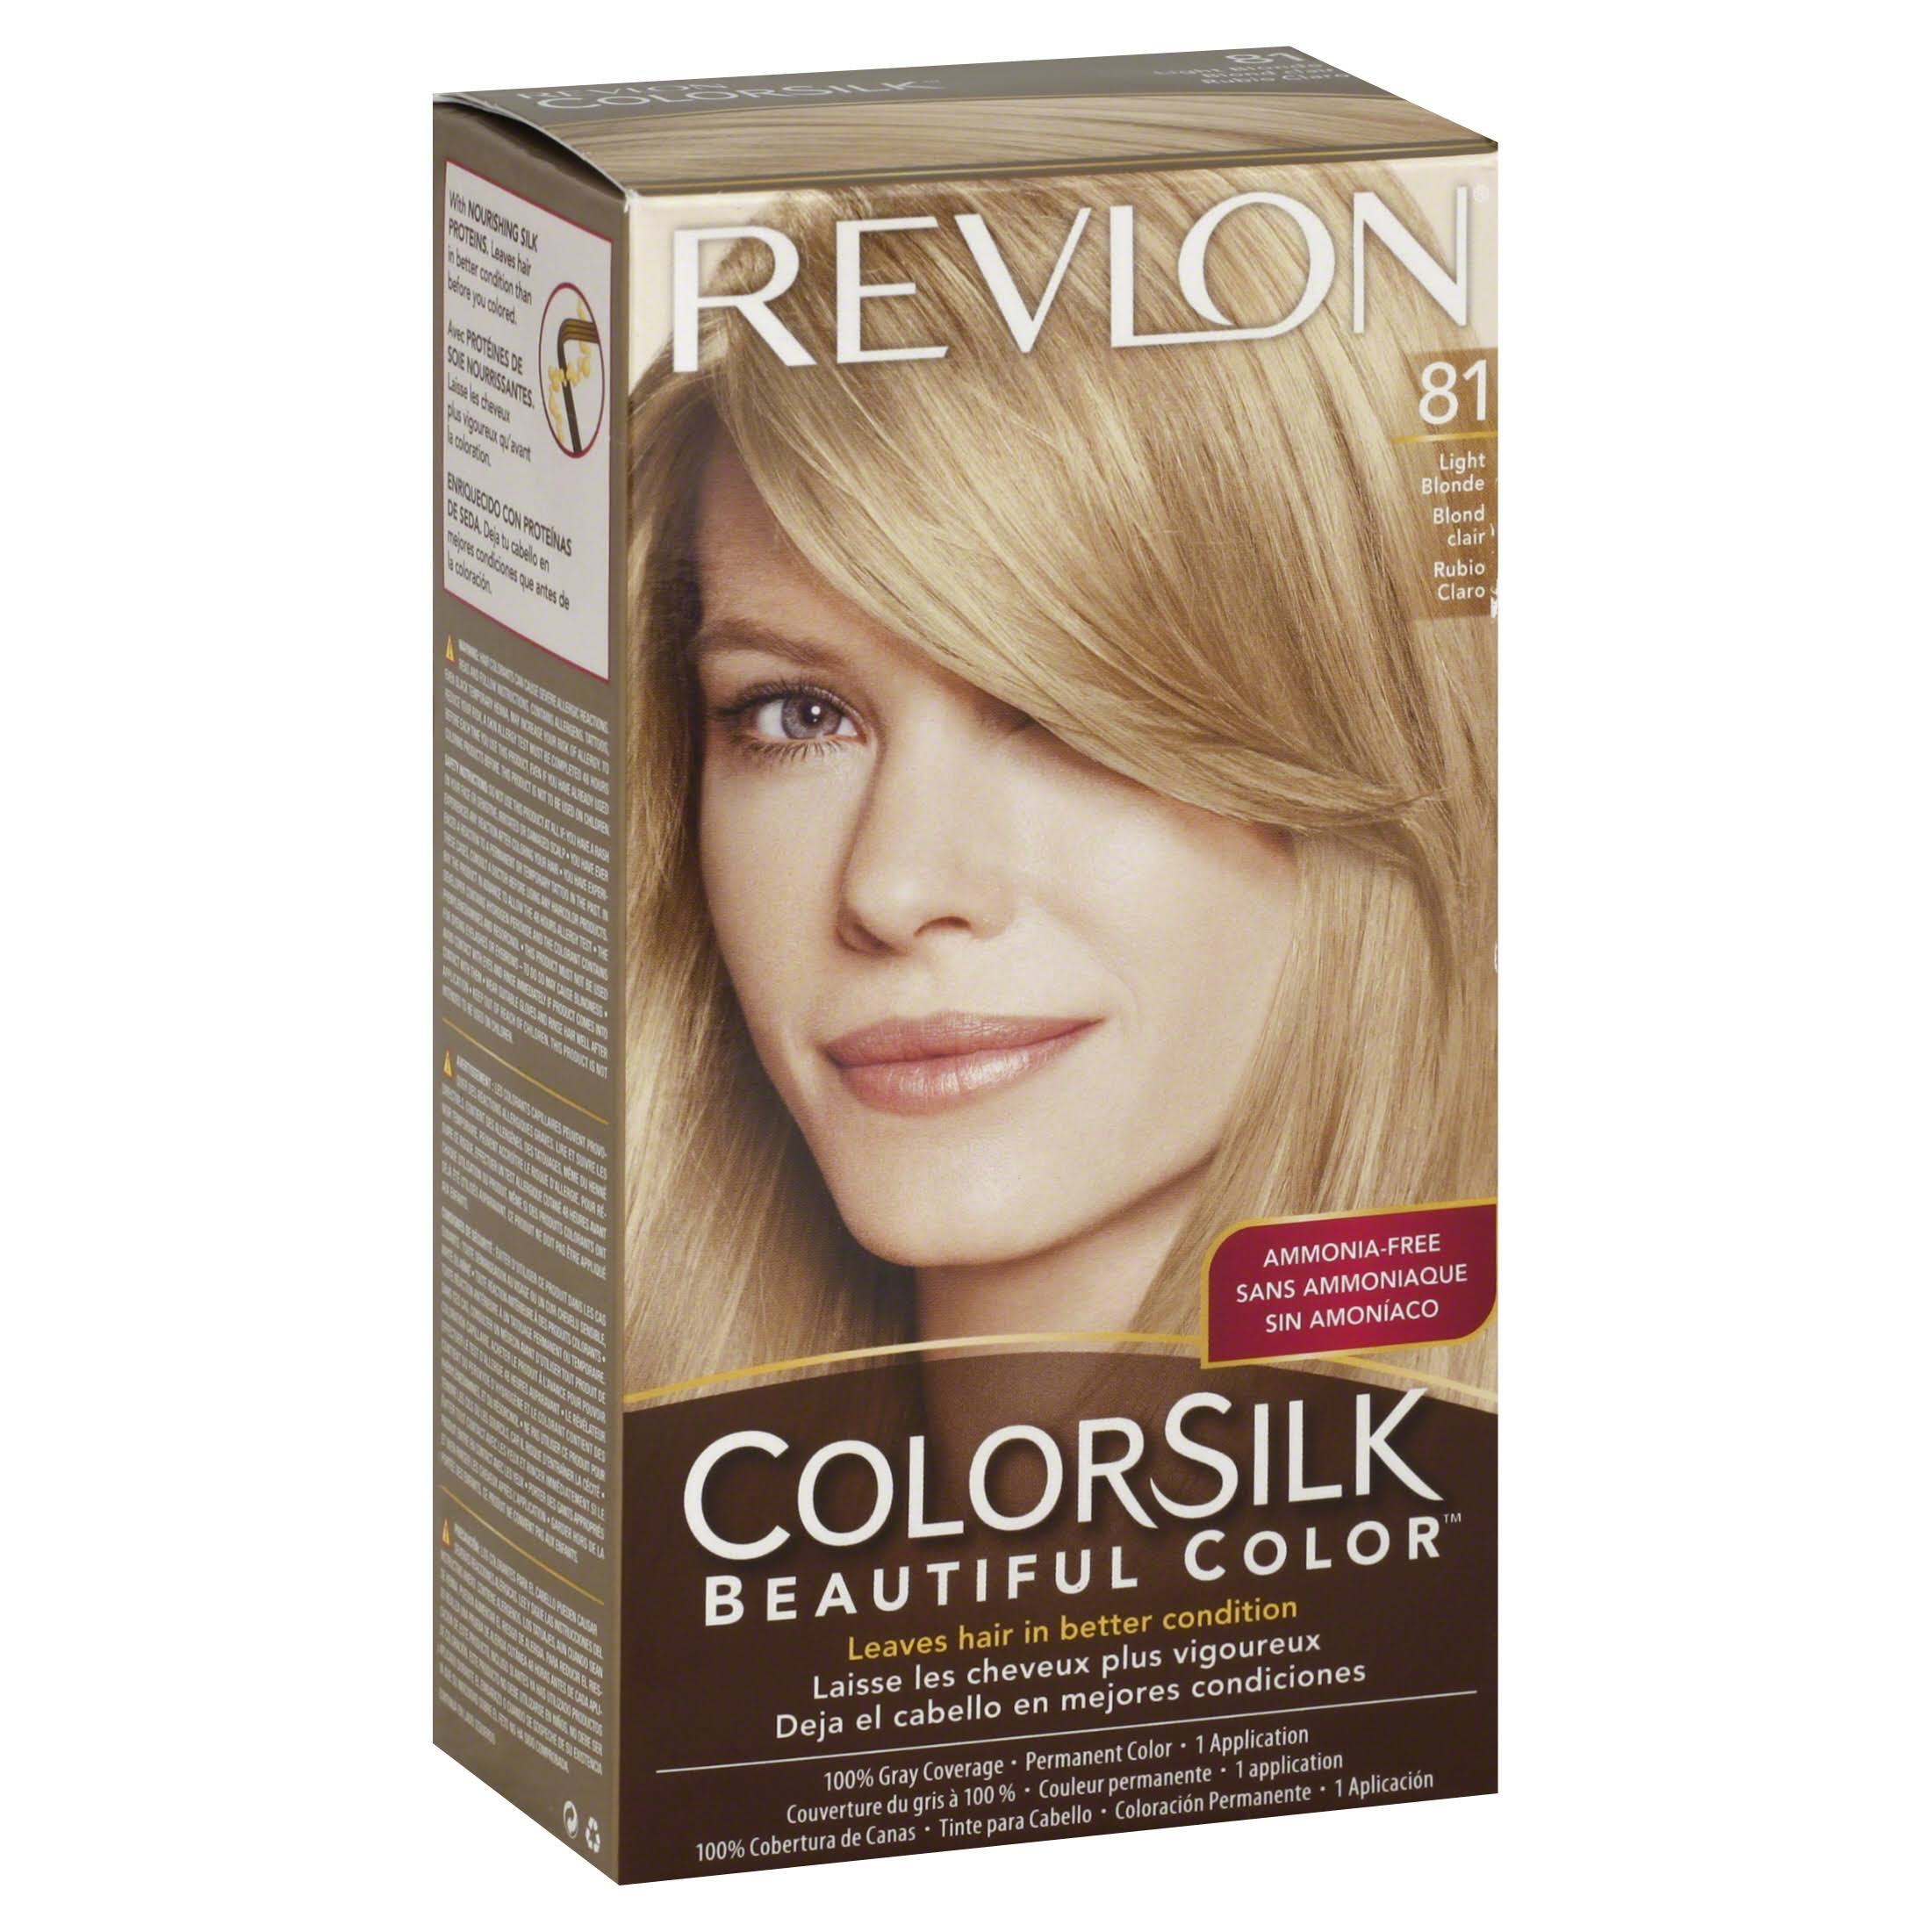 Revlon ColorSilk Beautiful Color Permanent Hair Color - 81 Light Blonde, 1 application